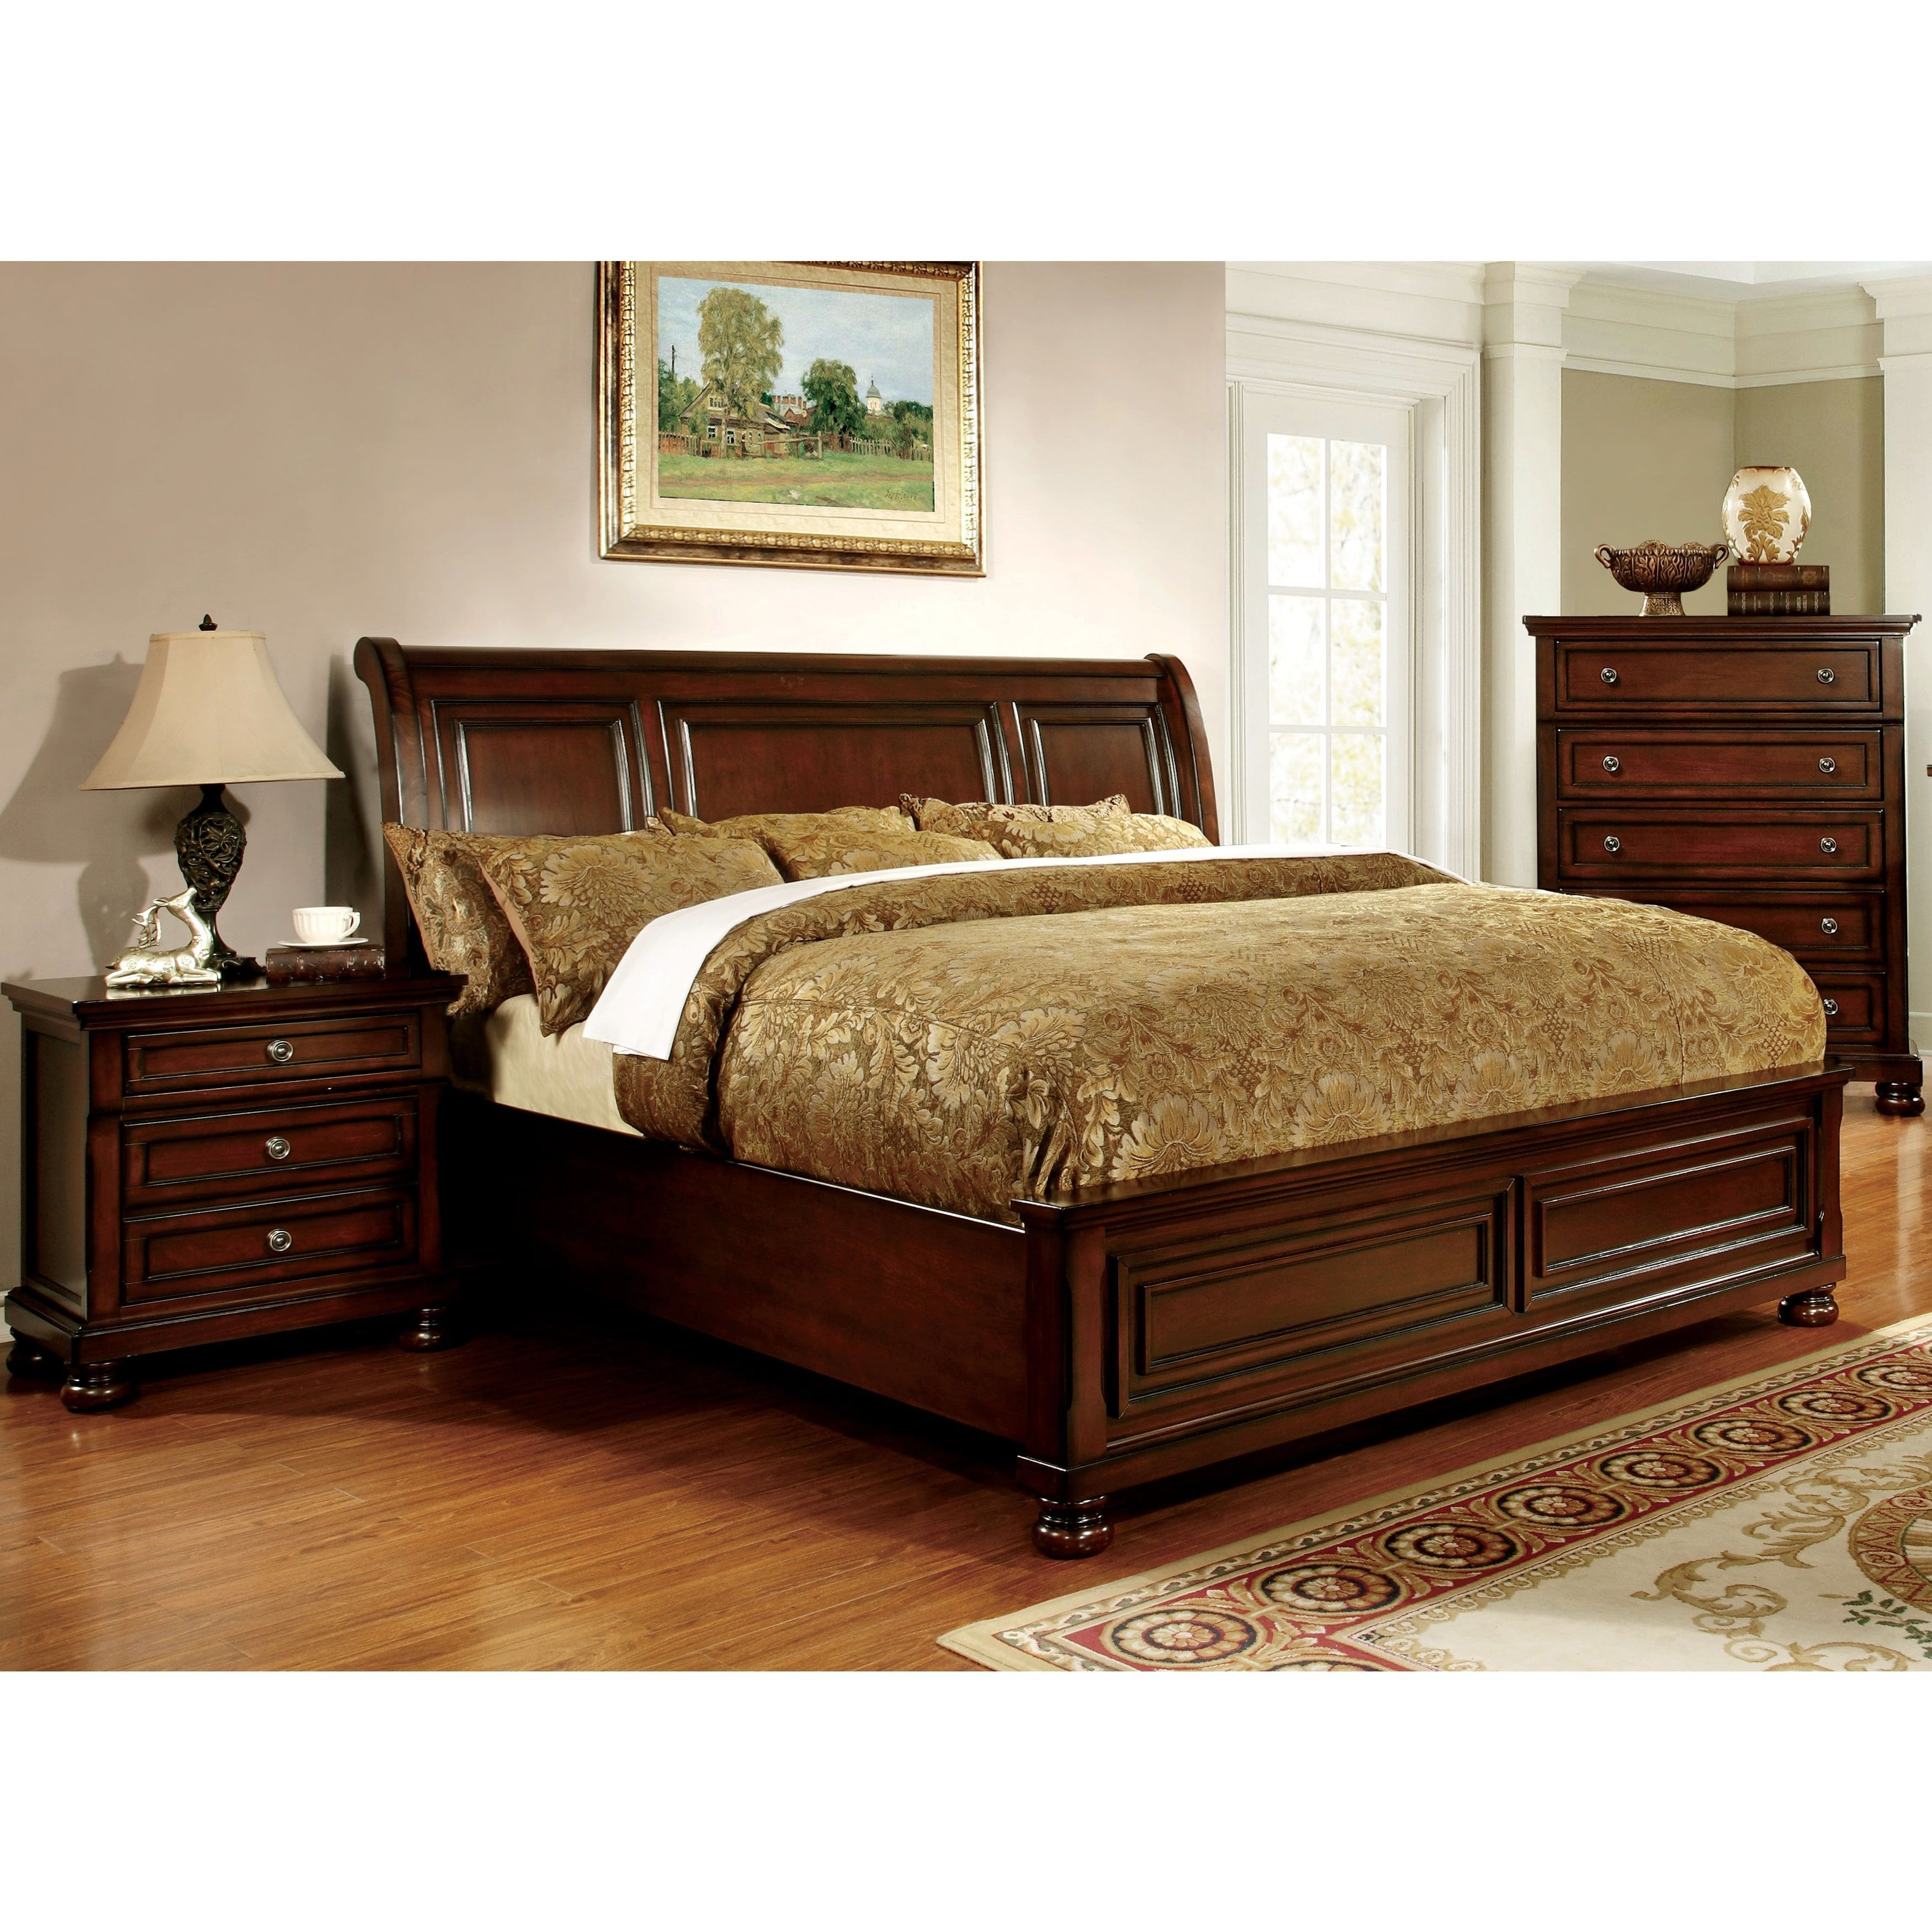 Gracewood Hollow Yep Cherry Paneled Bed In 2019 Beds